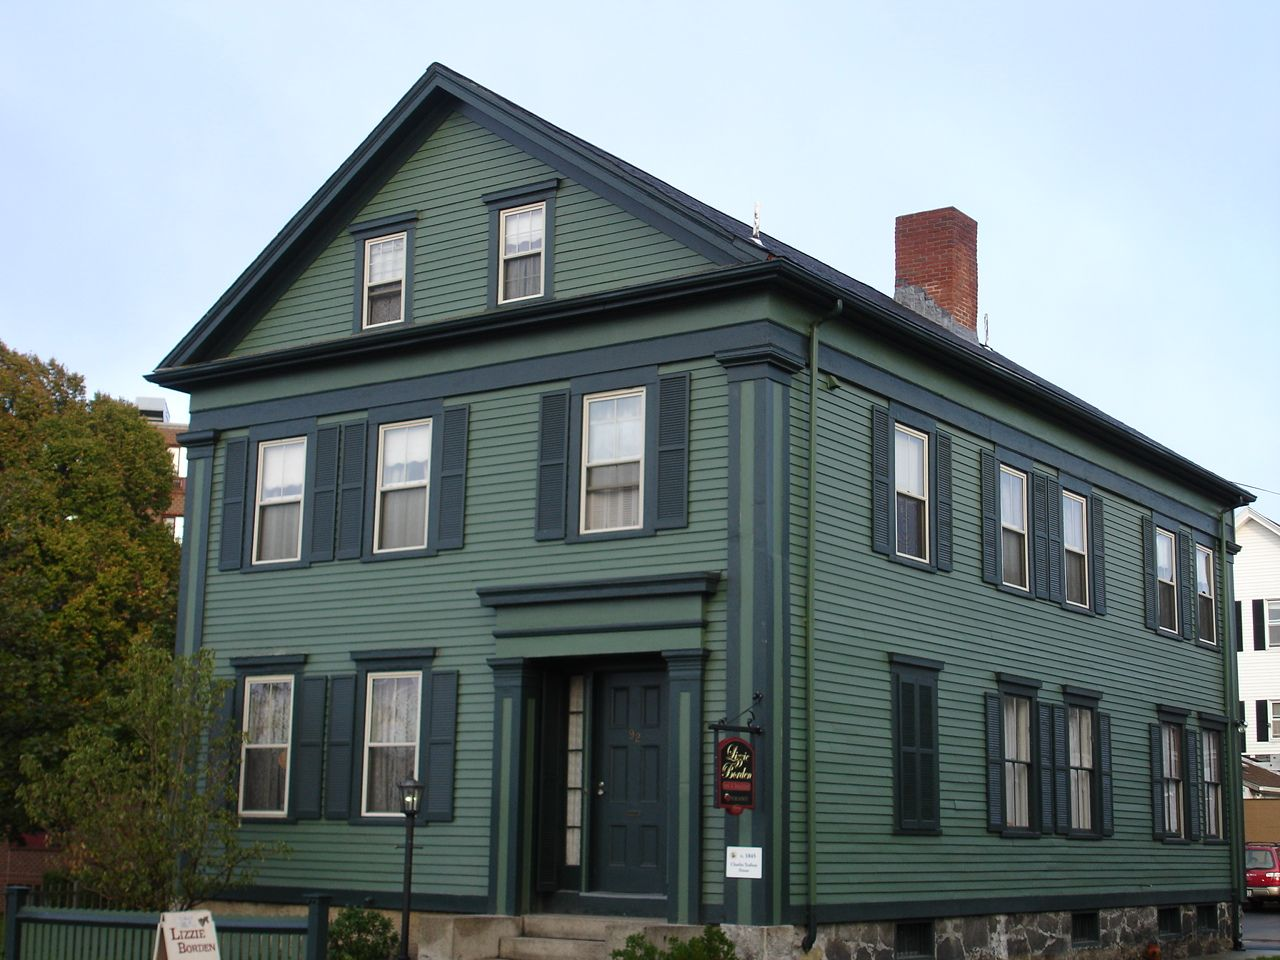 The Lizzie Borden House Fall River Massachusetts Real Haunted Houses Haunted Houses In America Scary Haunted House